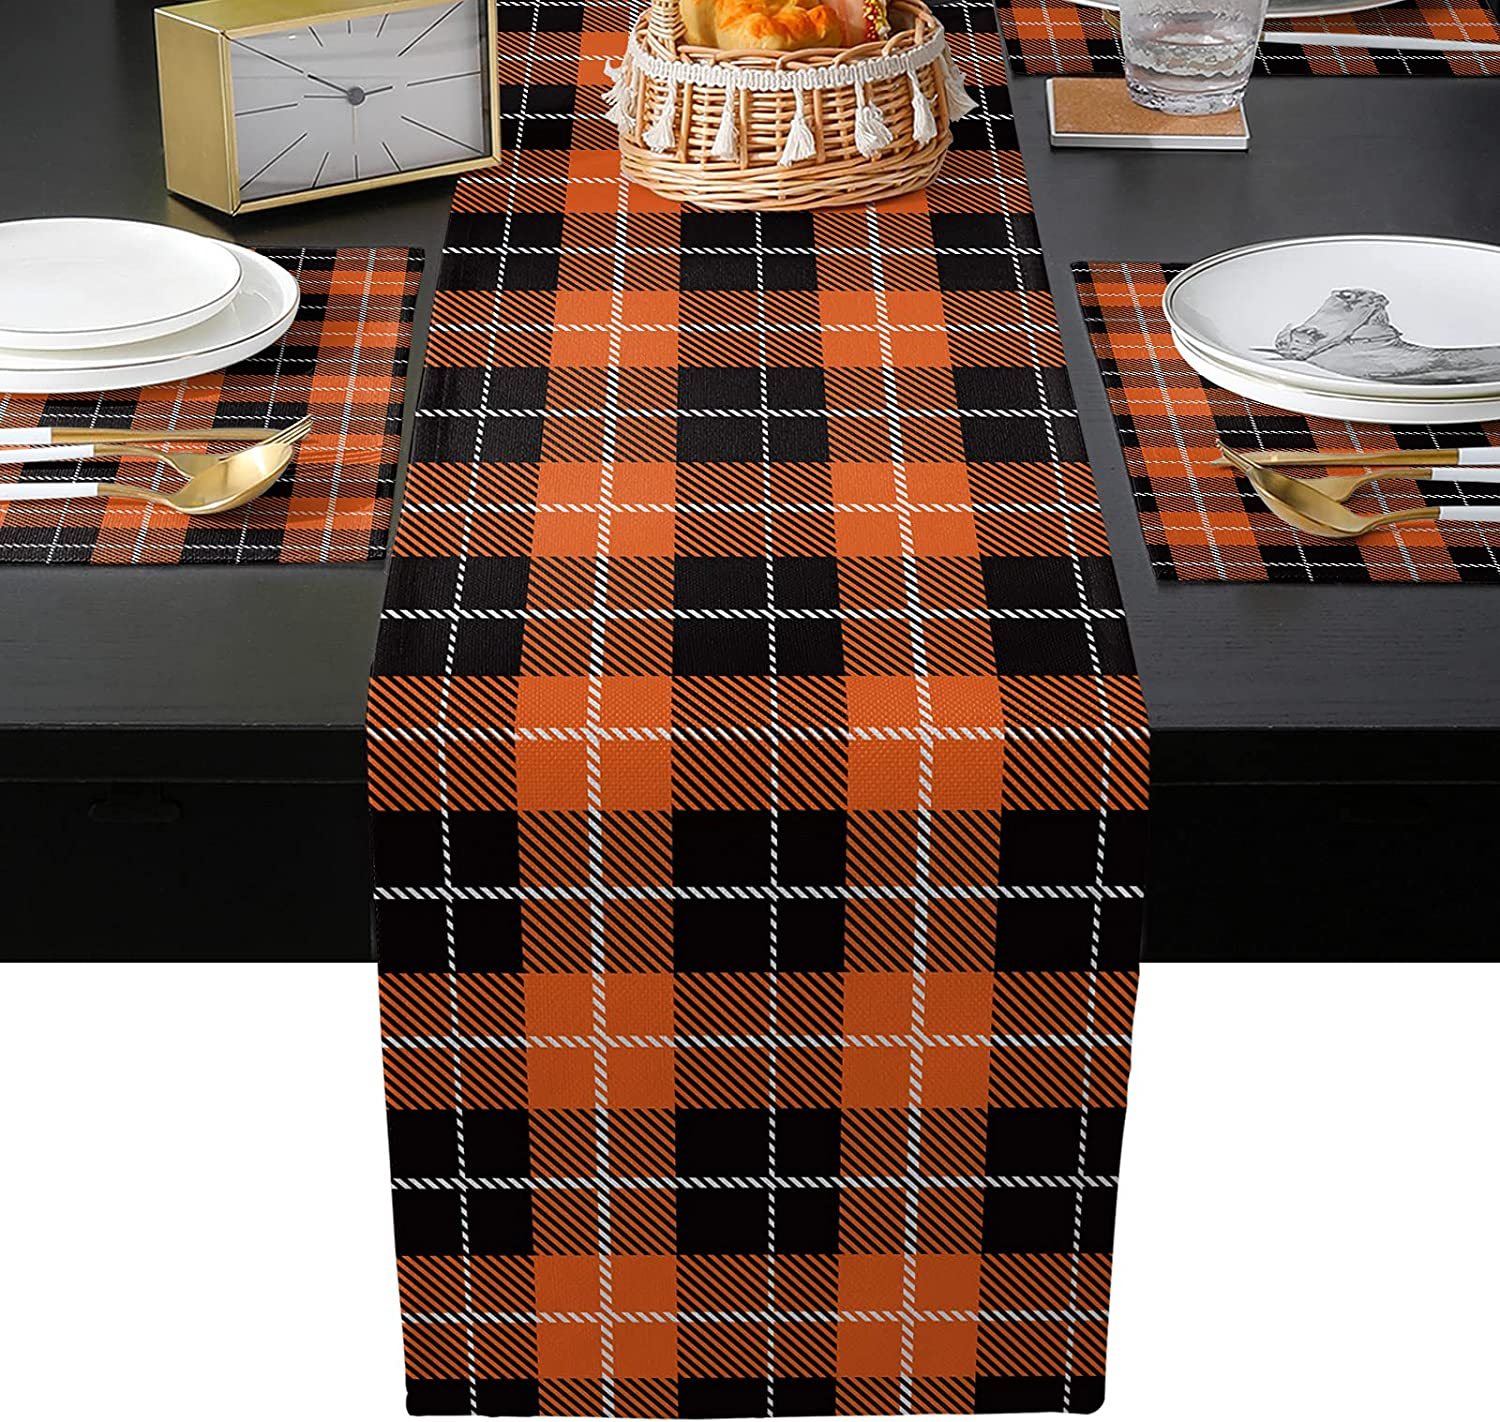 BABE MAPS Buffalo Plaid Table Set Accessories High quality new Brand Cheap Sale Venue Runner with